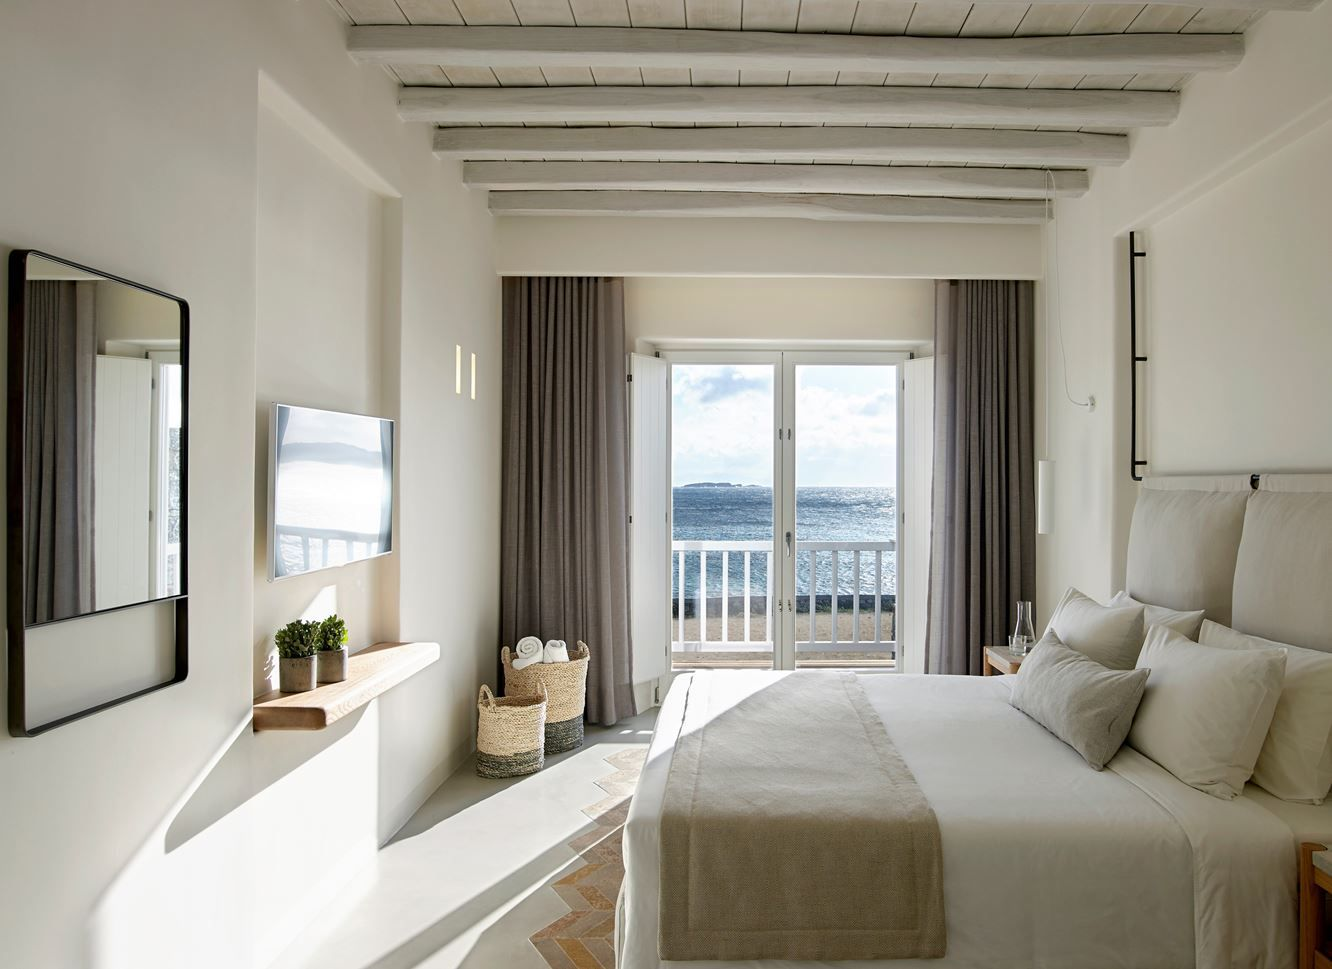 1556710909 282 make your windows the star of the room with these bedroom curtain ideas - Make your Windows the Star of the Room With These Bedroom Curtain Ideas